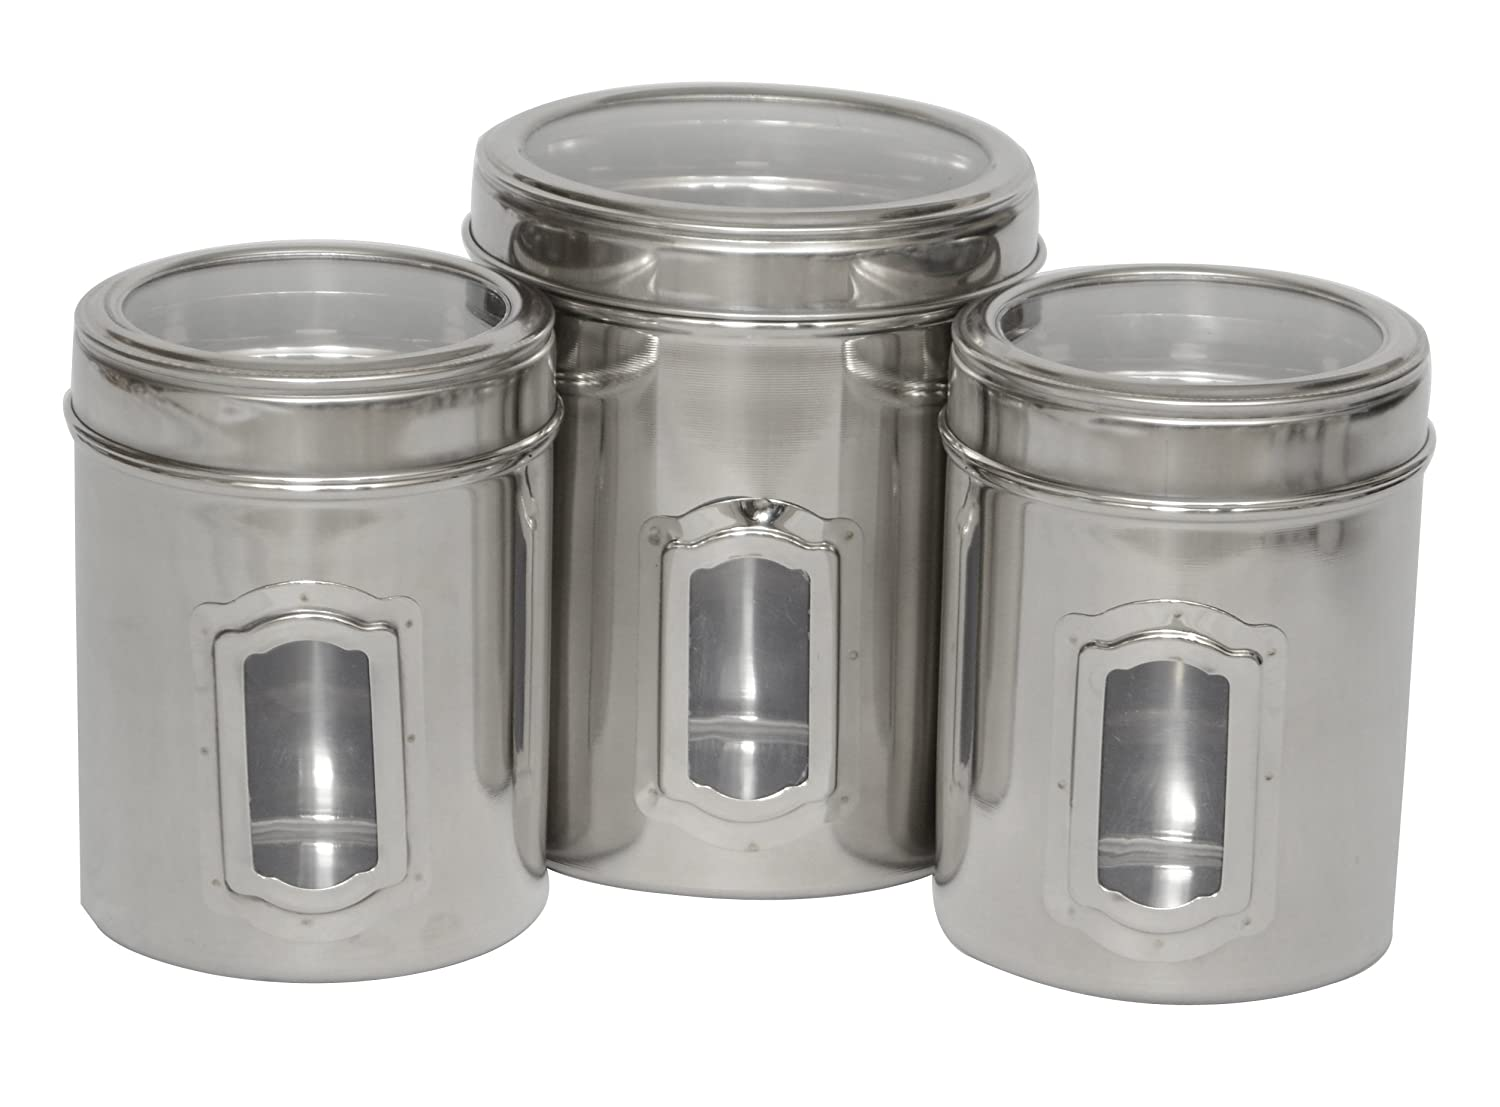 Decorative Dog Food Canisters